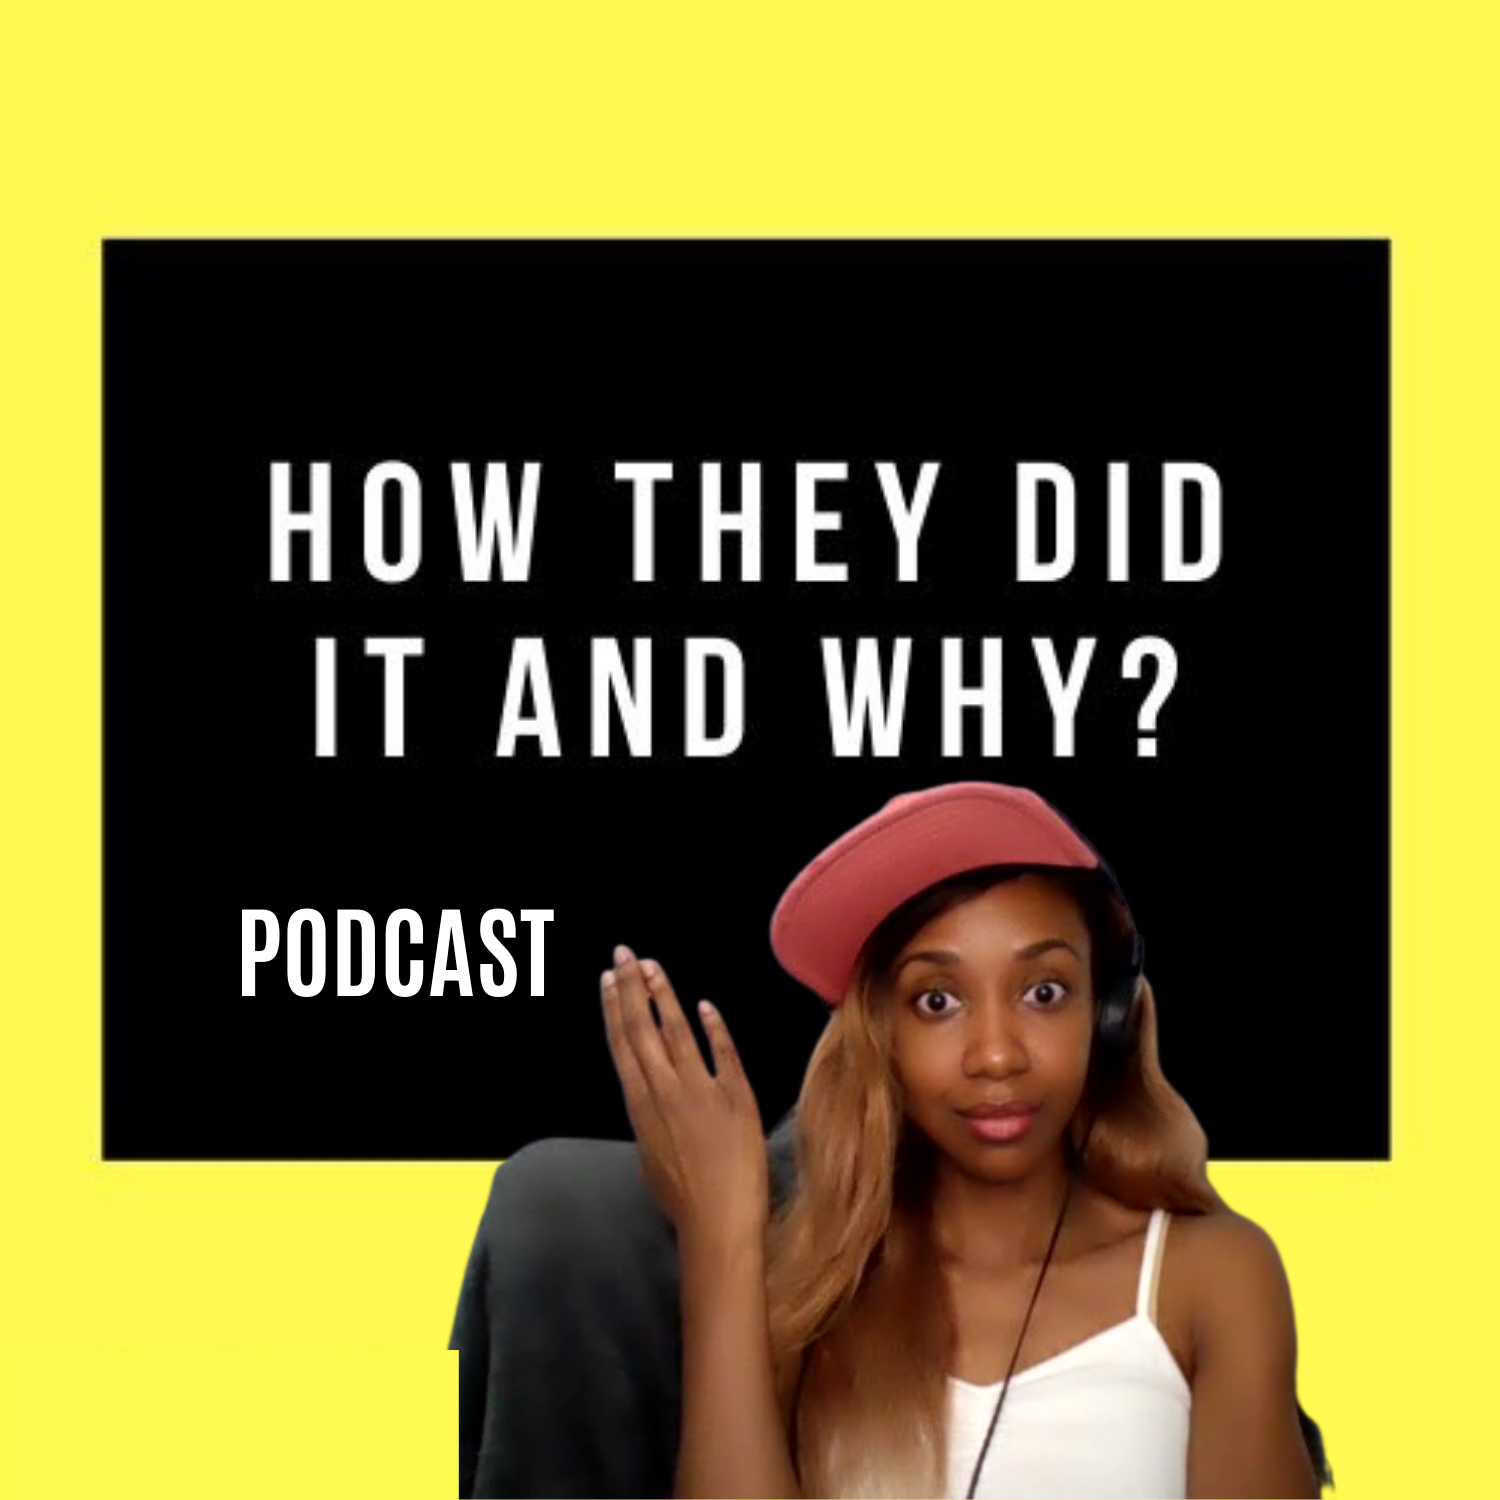 DAVES HOT CHICKEN REVIEW, DAVES HOT CHICKEN REACTION, FOOD REVIEW PODCAST, FOOD REACTION YOUTUBE